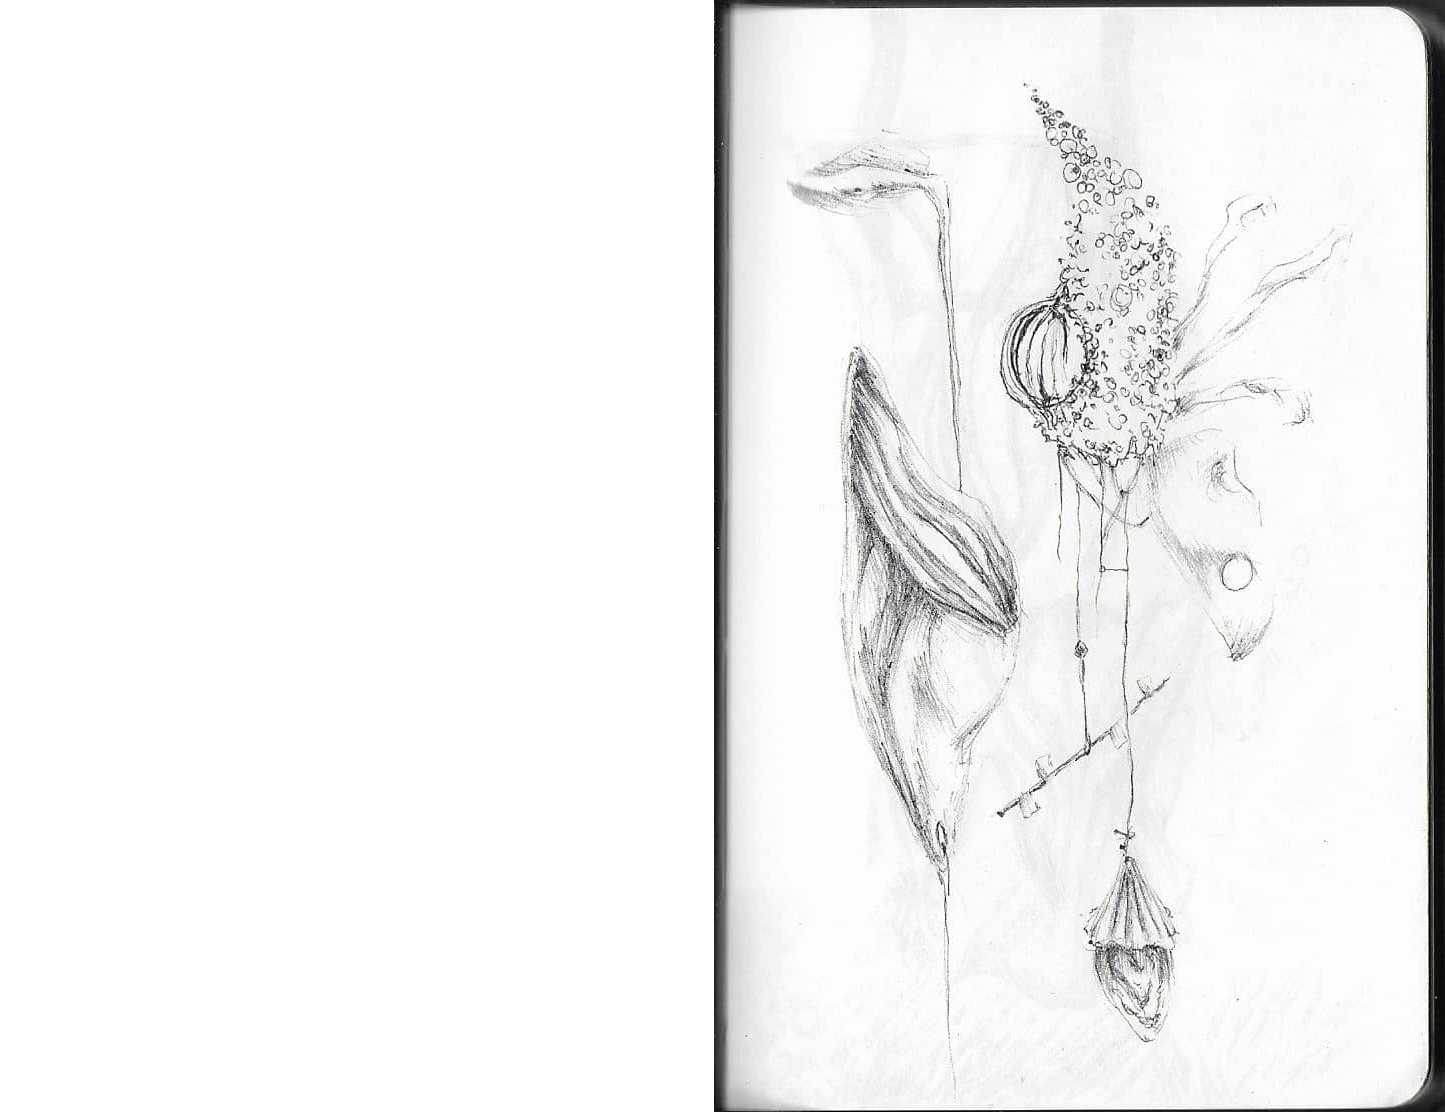 drawing of natural forms that seem to be tied together and hang from each other